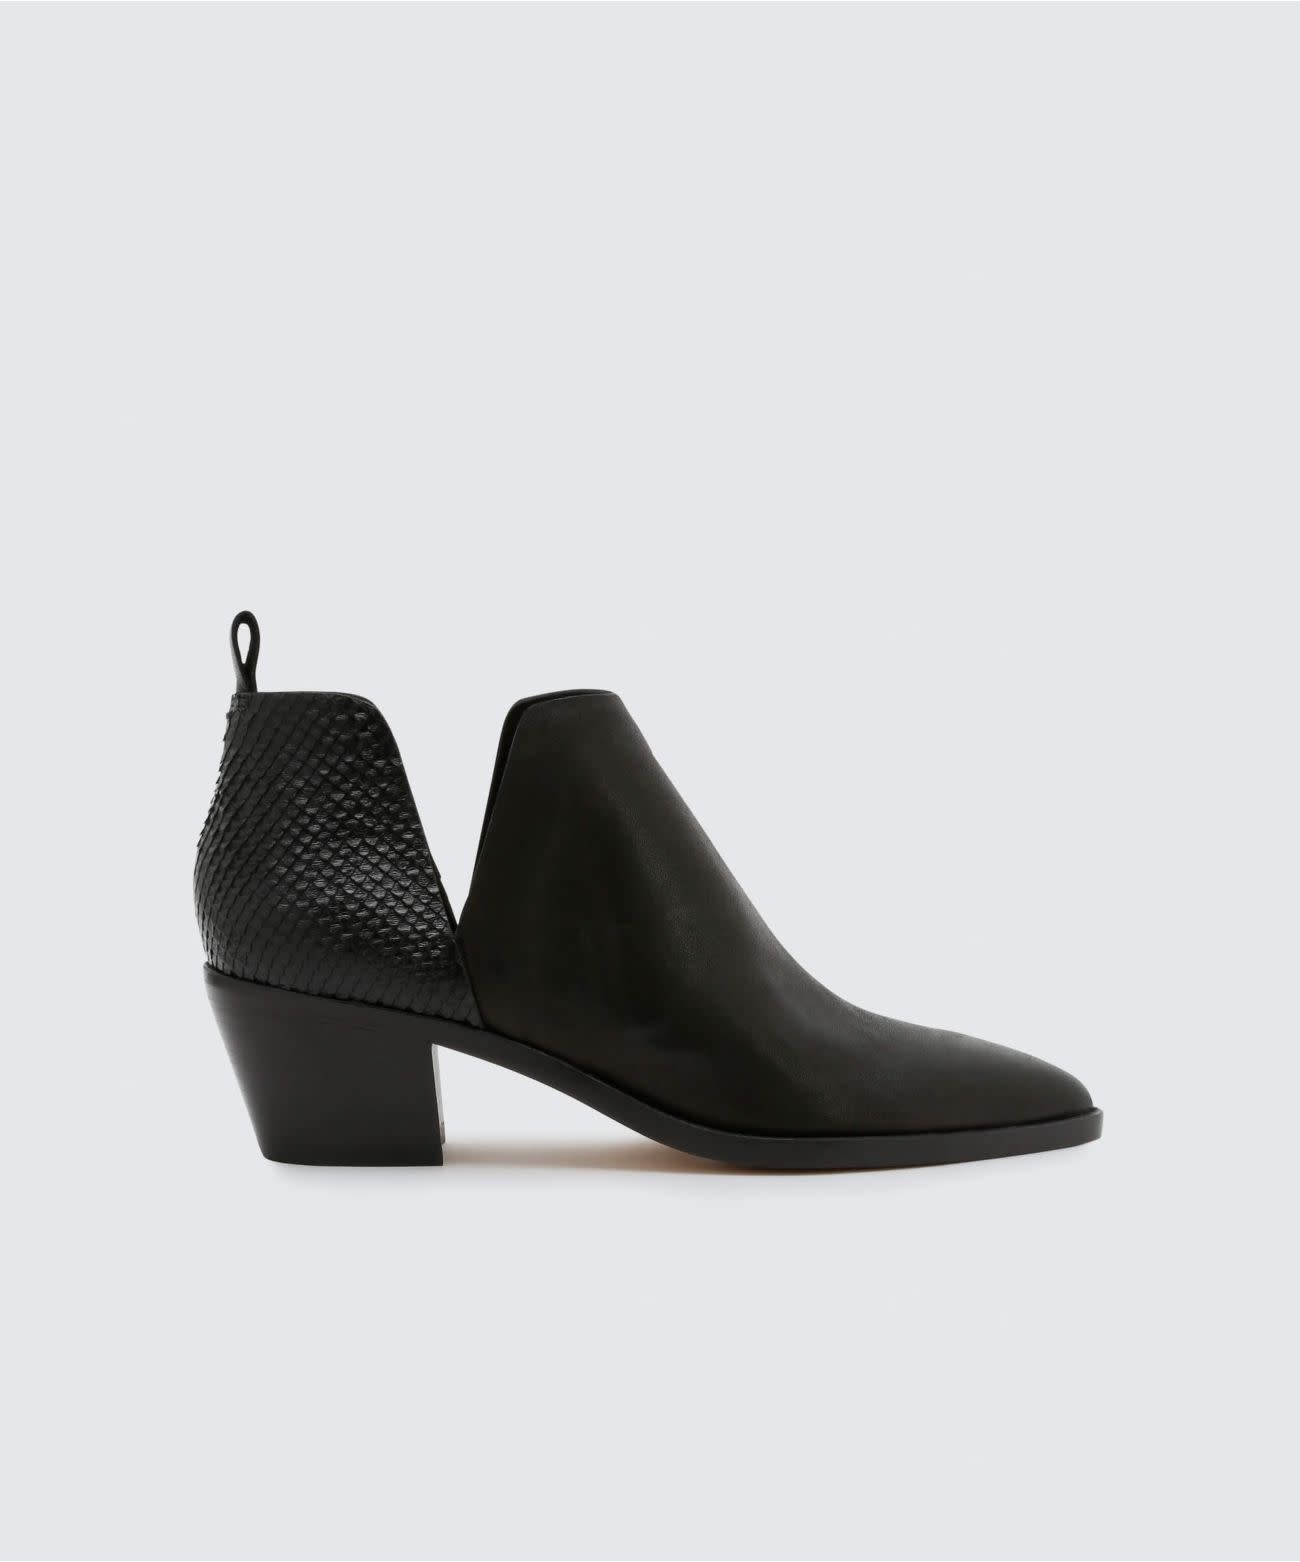 "DOLCE VITA DOLCE VITA ""SONNI"" SIDE CUT OUT BOOTIE  Reg. $199  Sale $149"